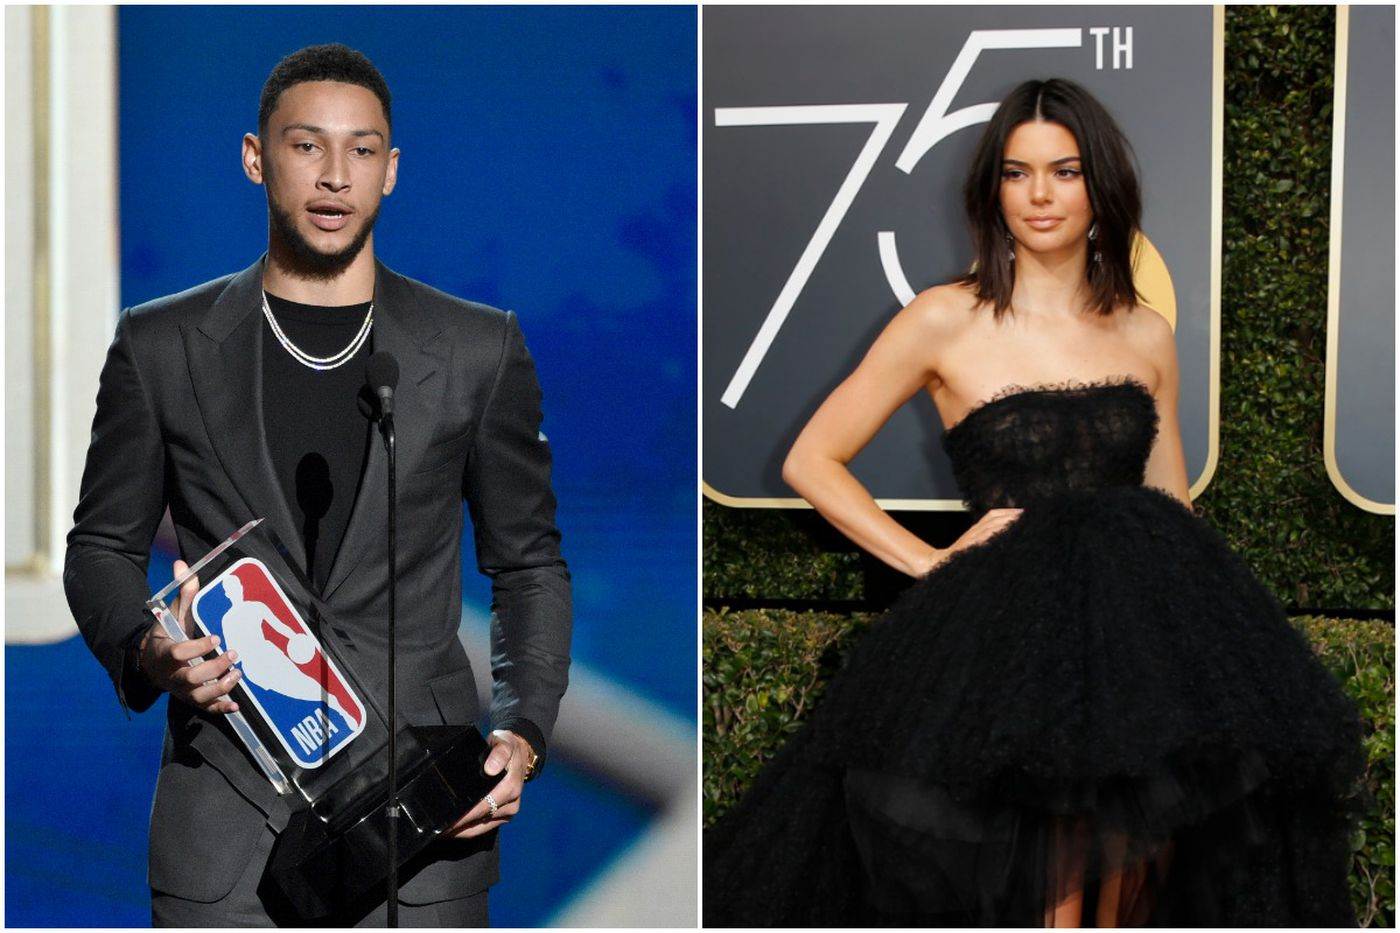 Sixers' Ben Simmons spotted hanging with Kendall Jenner in Philly